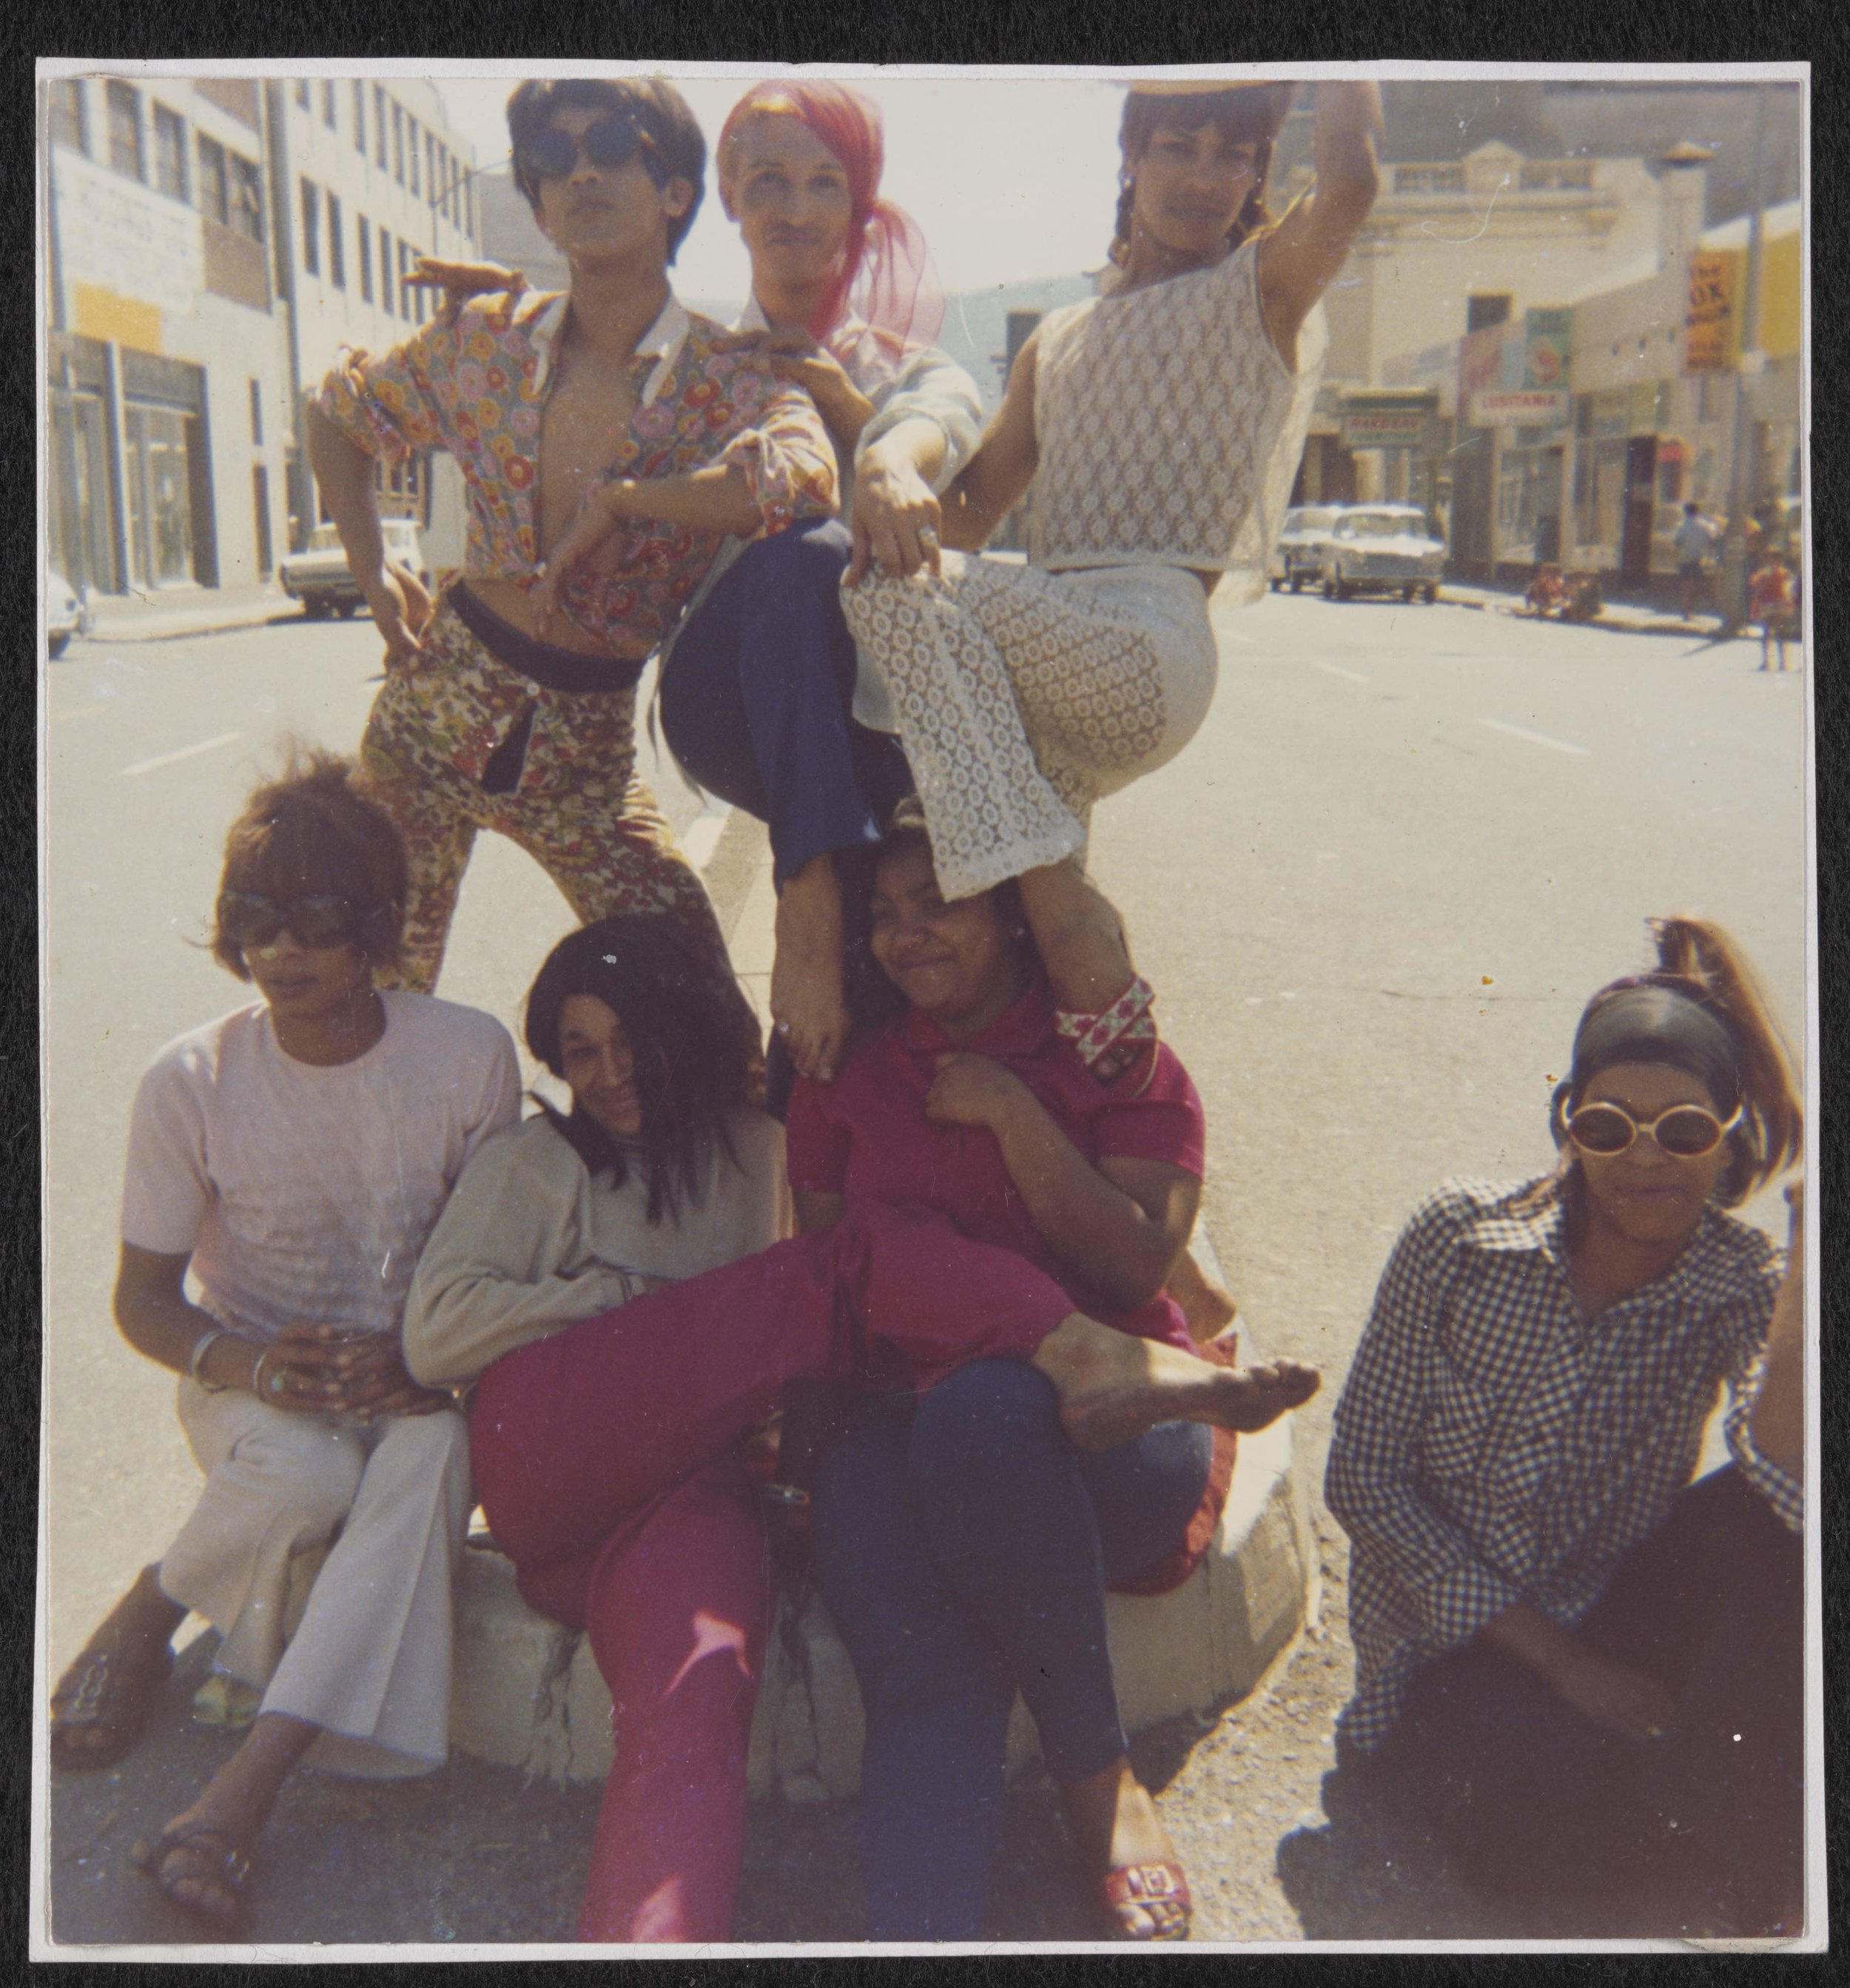 Olivia, Kewpie, Patti, Sue Thompson, Brigitte, Gaya, and Mitzy in the Middle of the Street